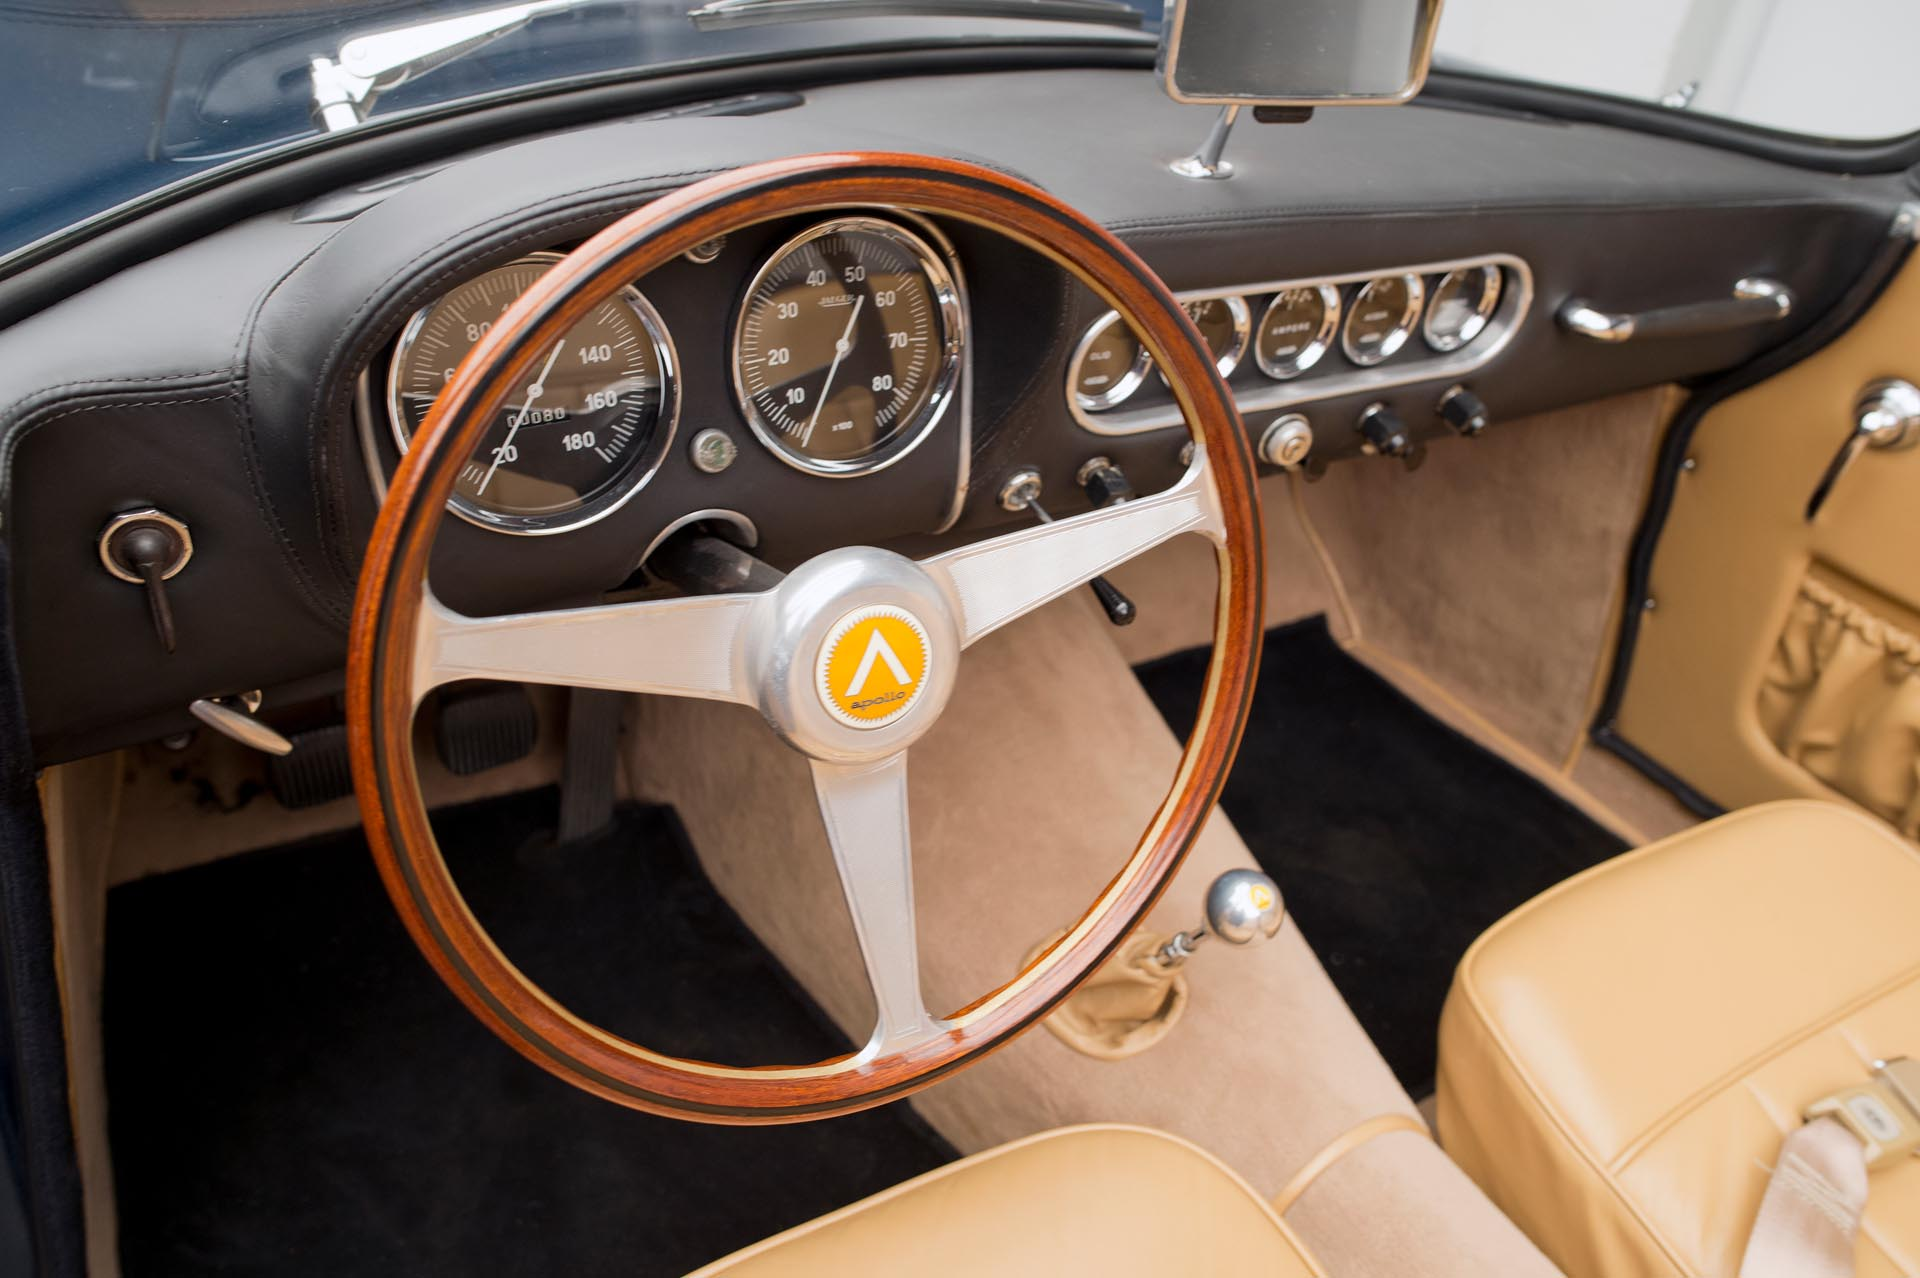 Hagerty: 5 classy yet obscure mid-century roadsters